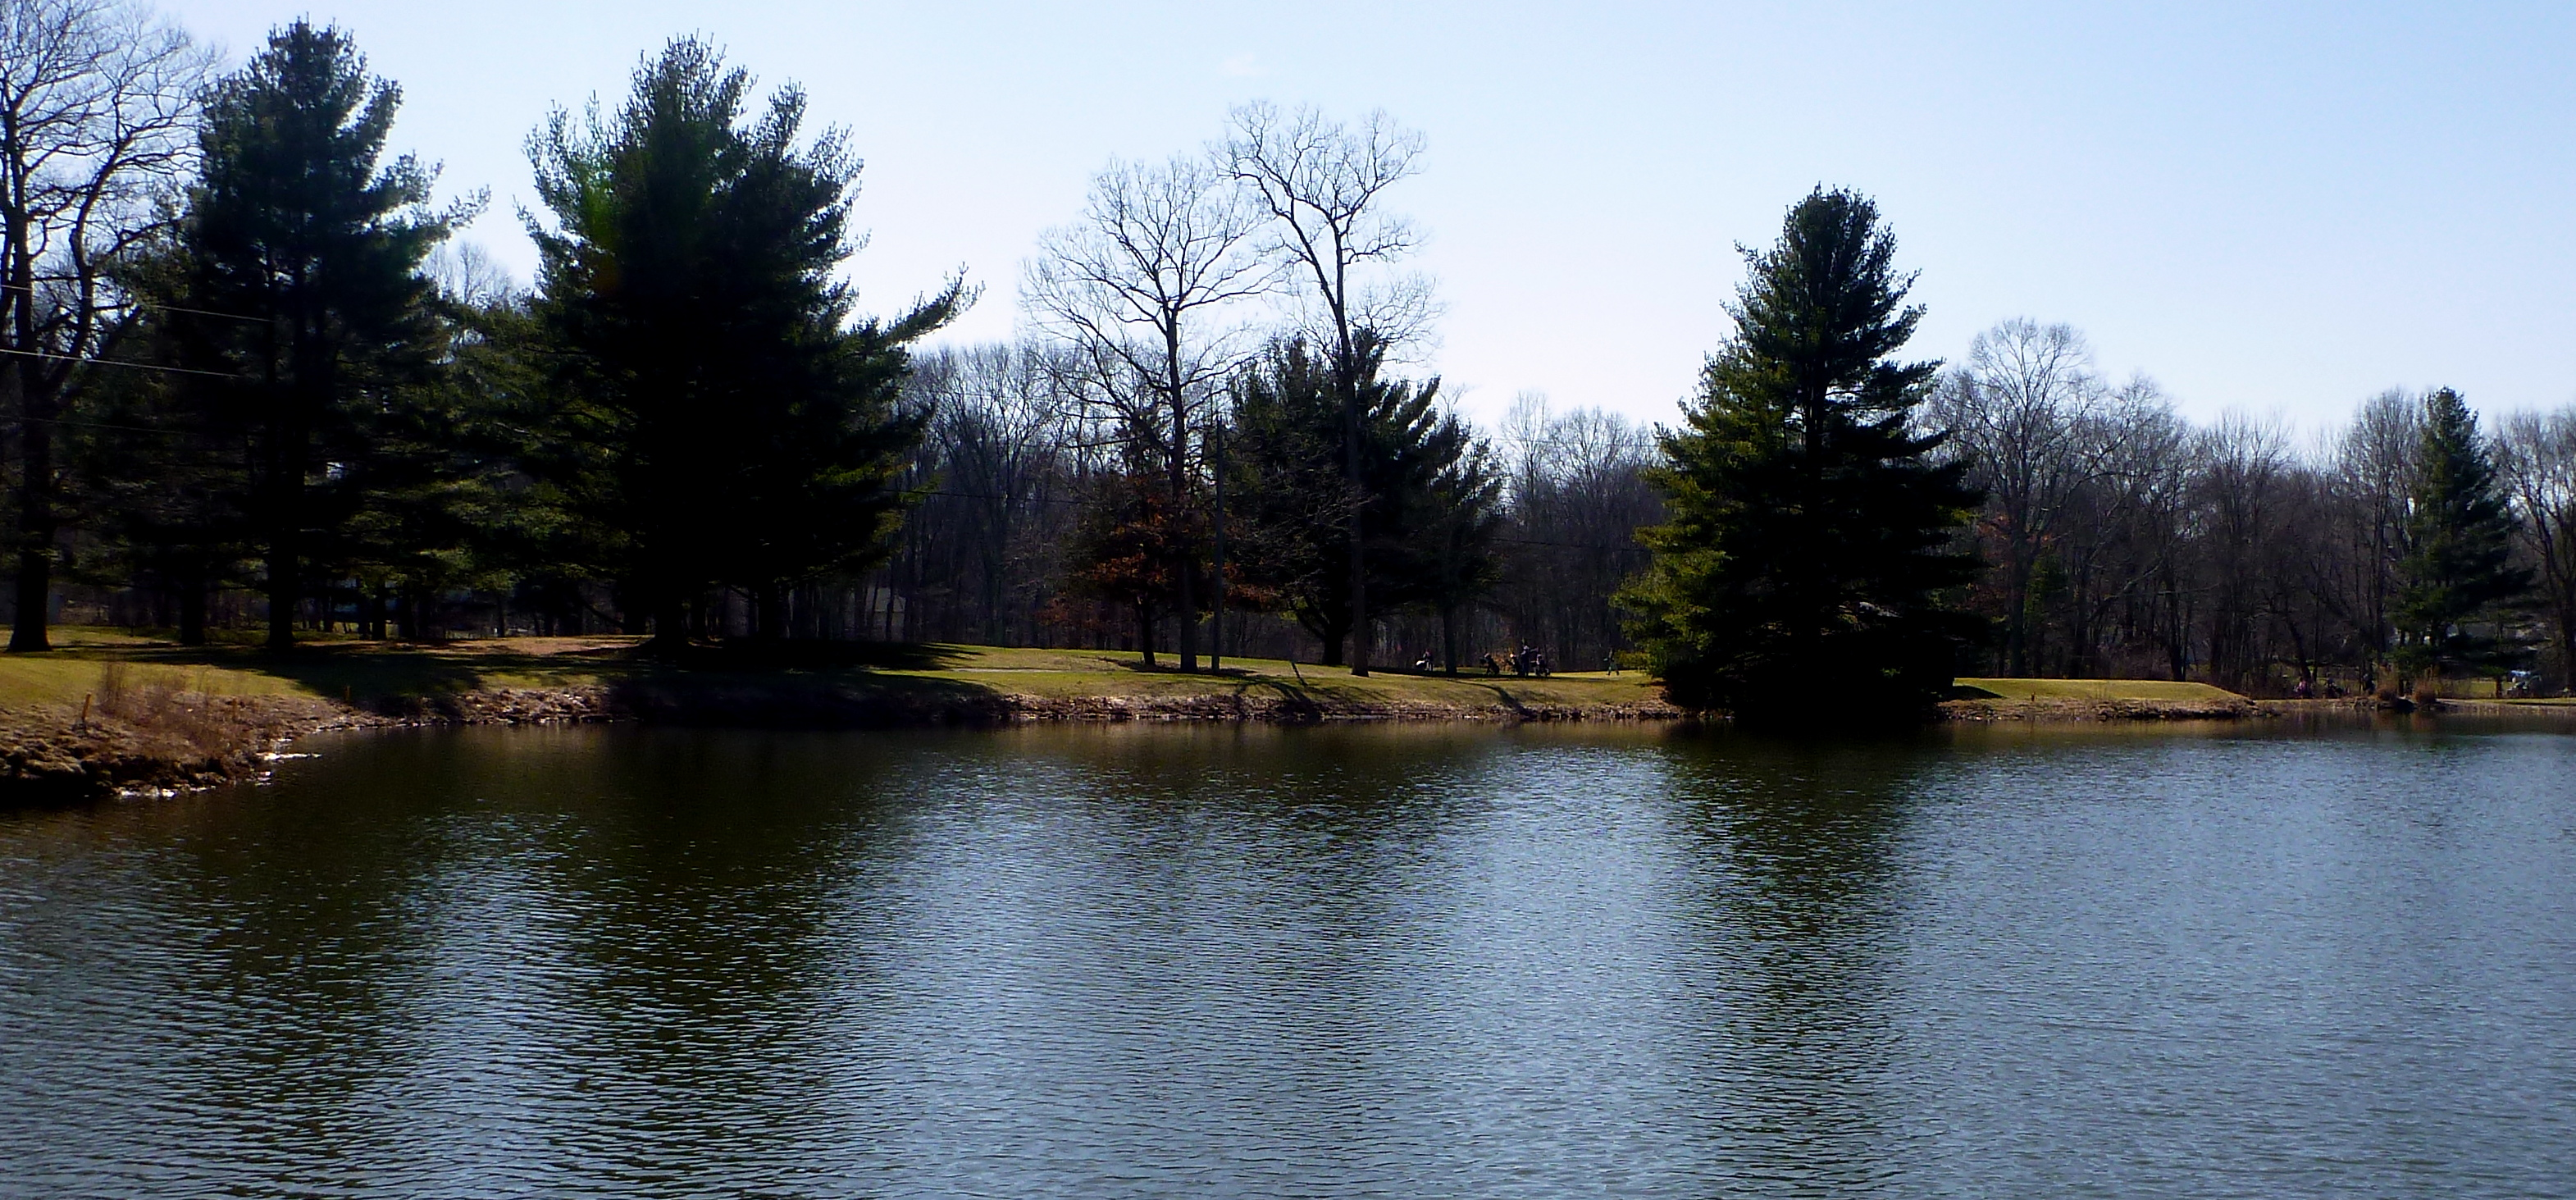 Ice-free pond at Woodbridge Country Club, Woodbridge, Connecticut.